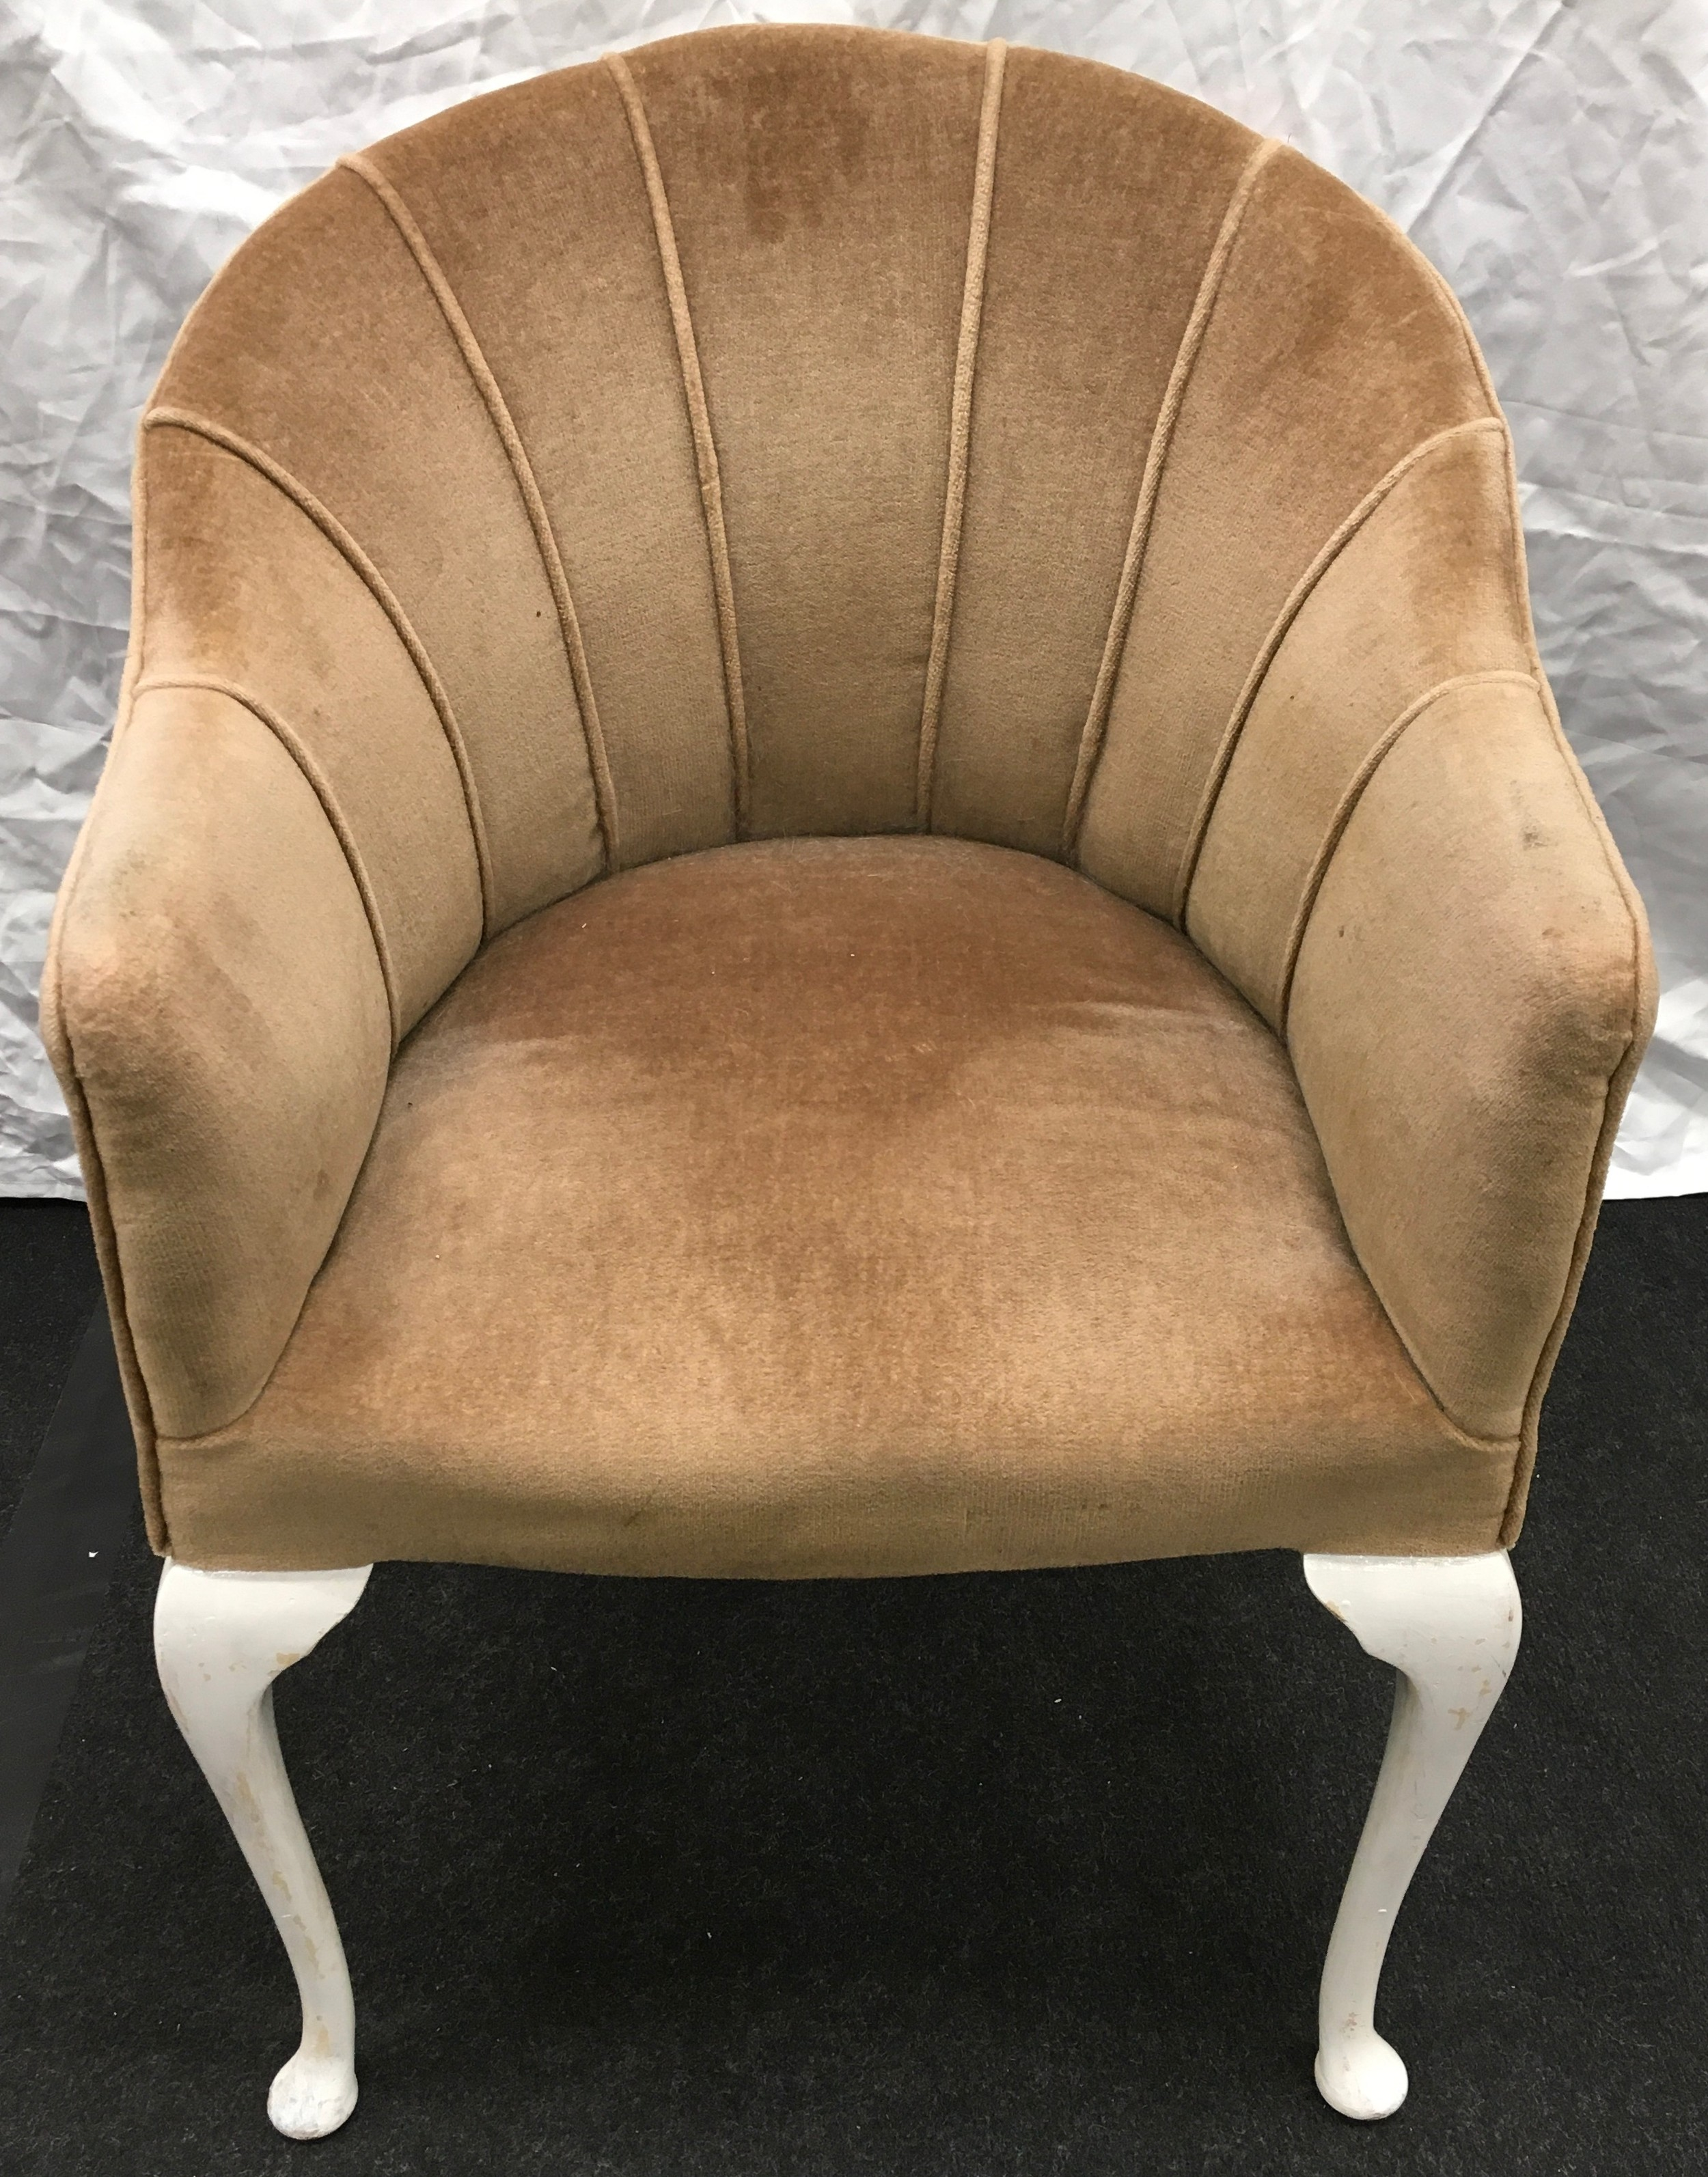 A club chair of white pained cabriole legs 57x85x50cm.